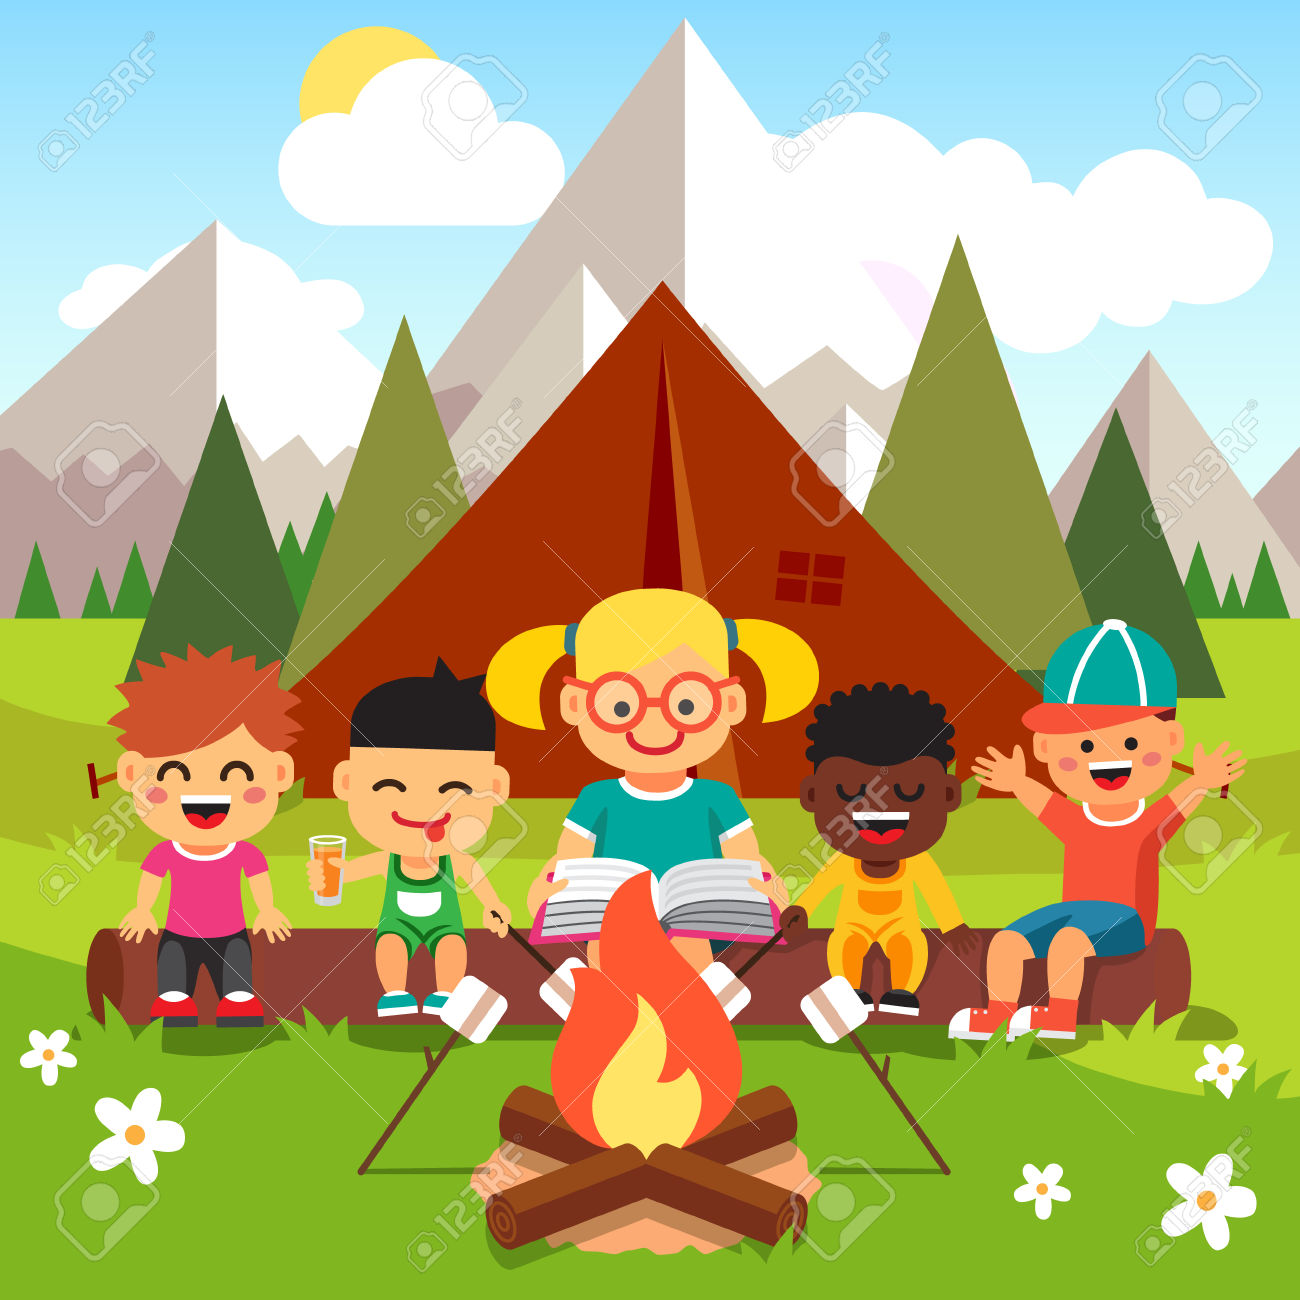 Bonfire with kids clipart banner free stock 27,907 Bonfire Cliparts, Stock Vector And Royalty Free Bonfire ... banner free stock